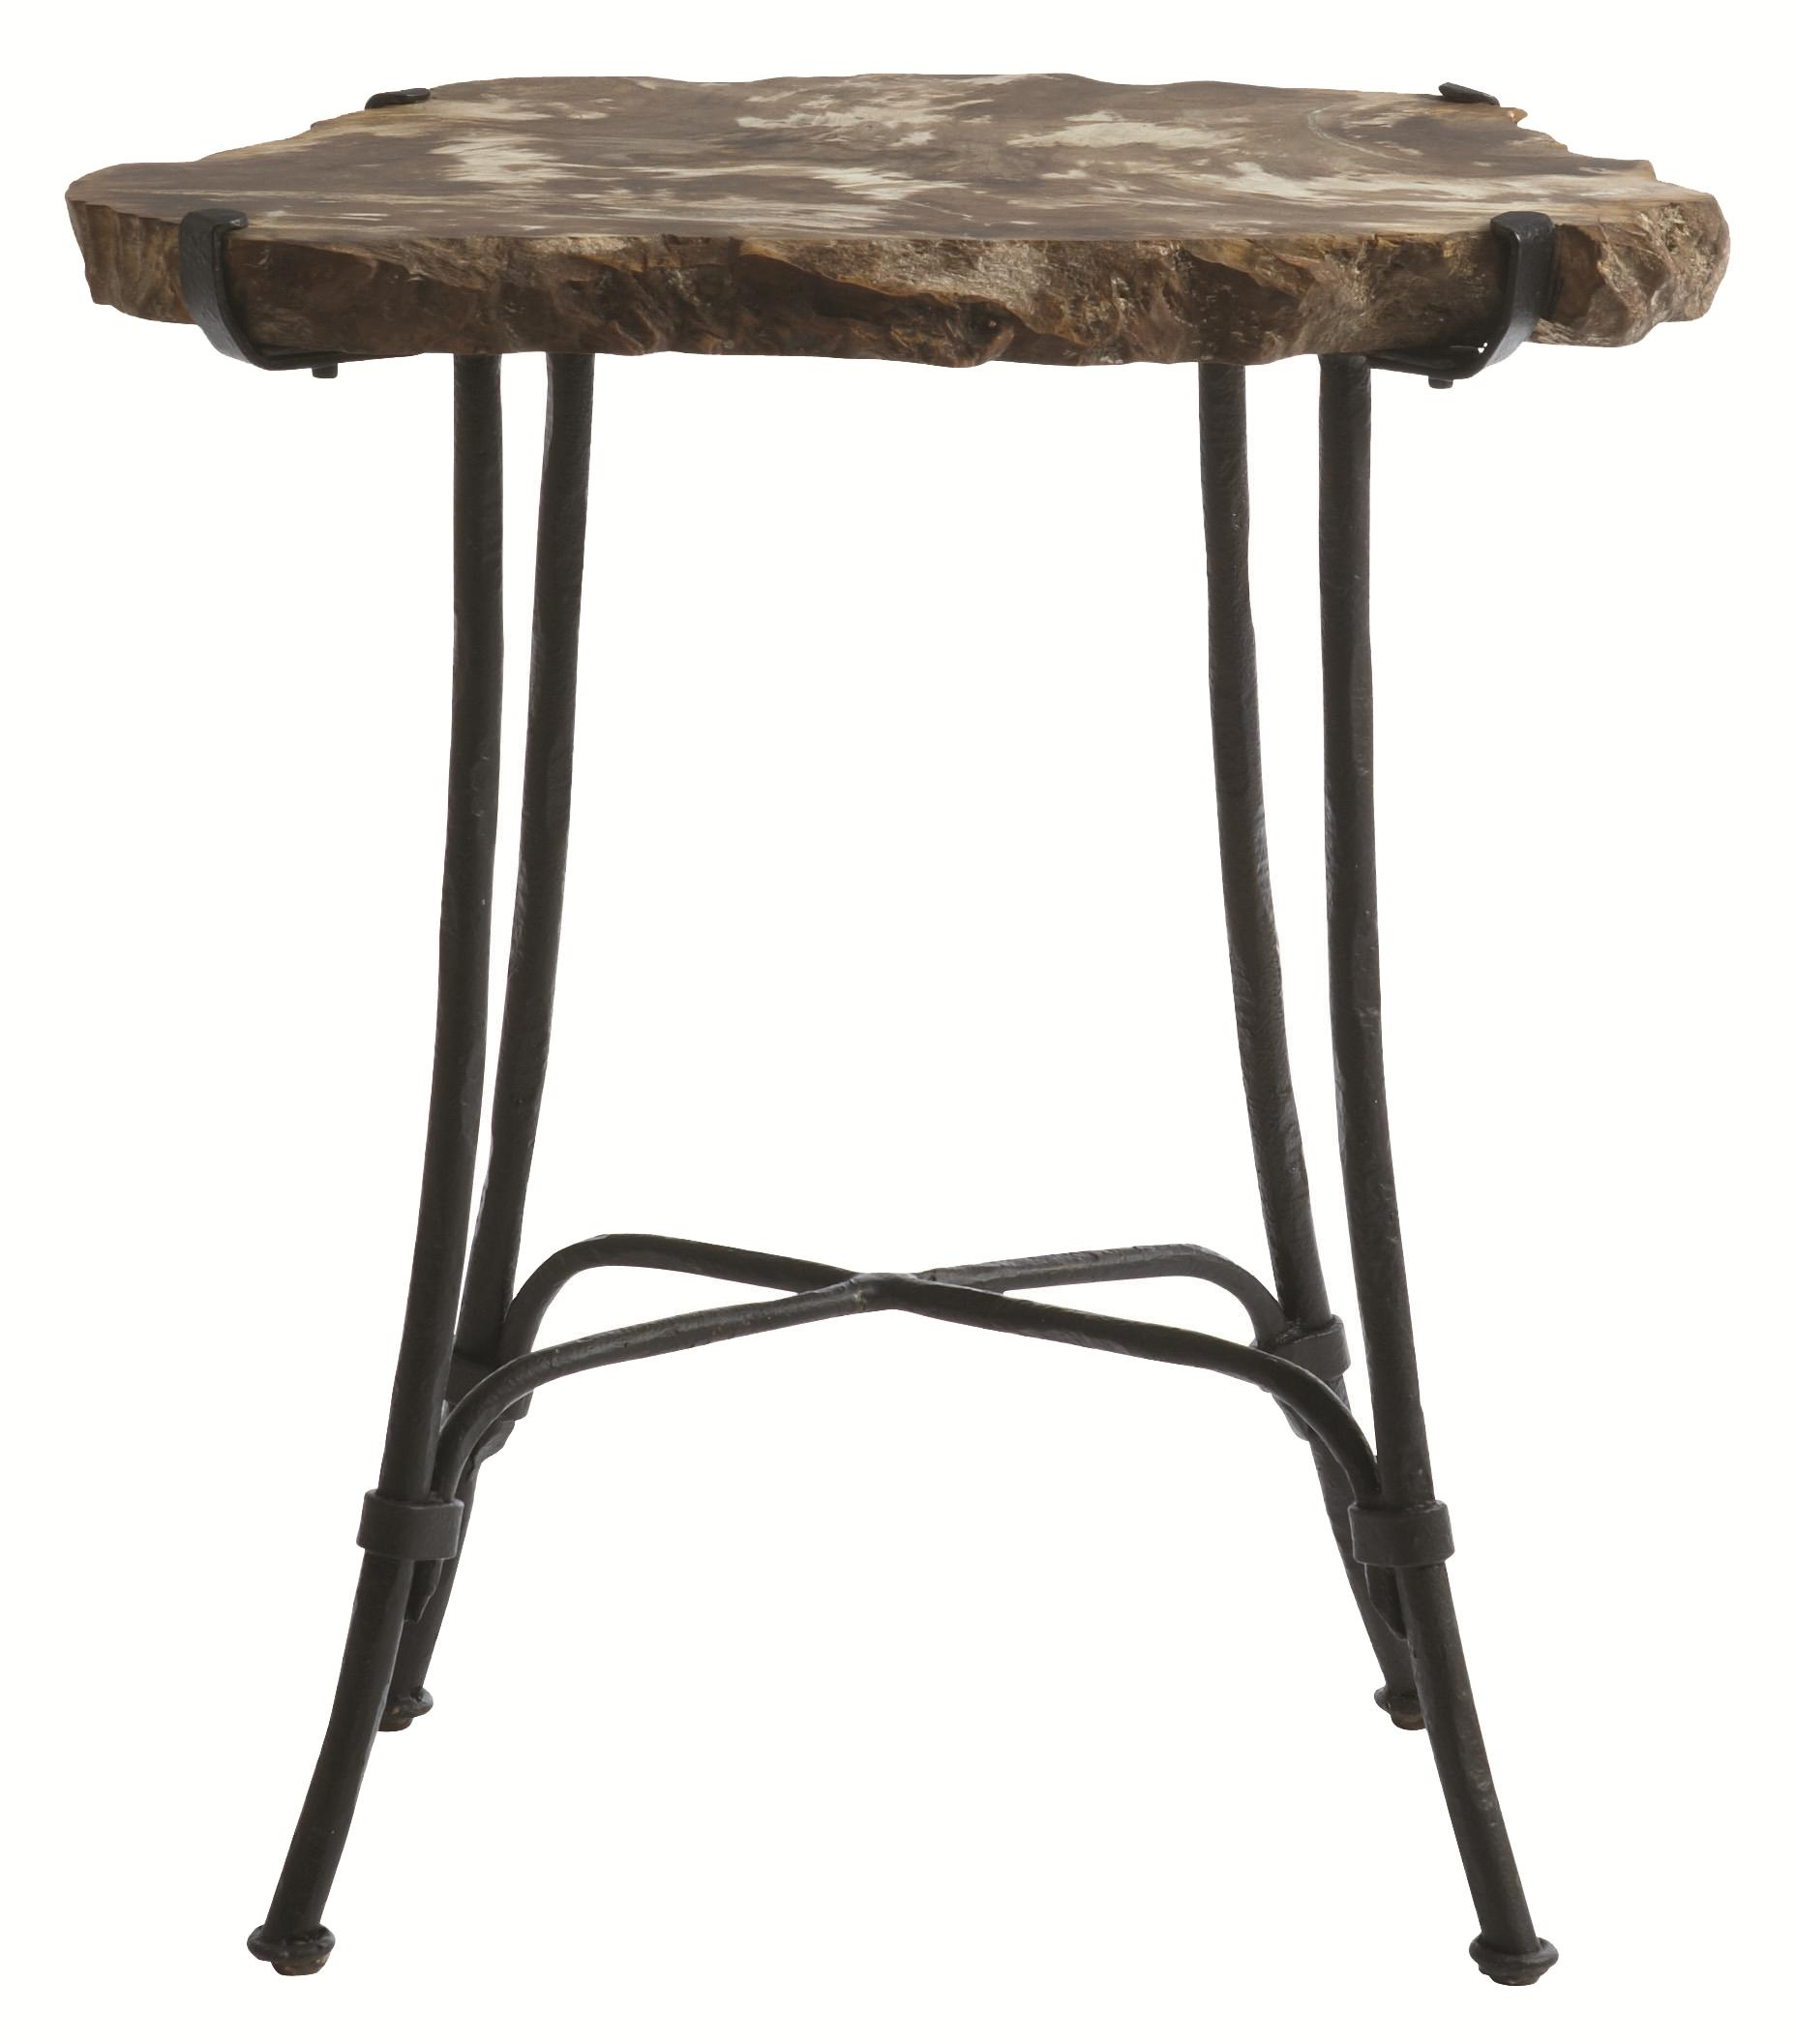 Interiors - Accents Petrified Wood Slab Side Table by Bernhardt at Baer's Furniture